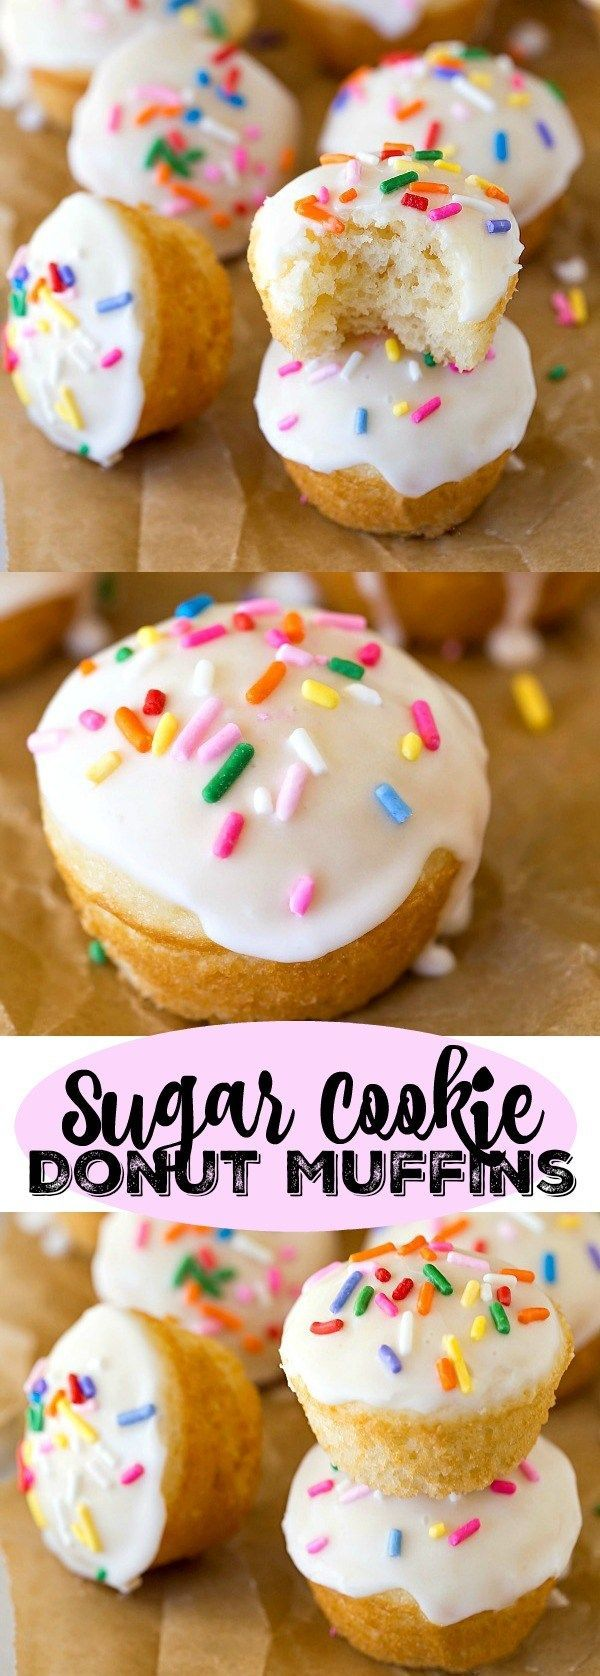 Sugar Cookie Donut Muffin Recipe   http://www.ihearteating.com   #breakfast #Christmas